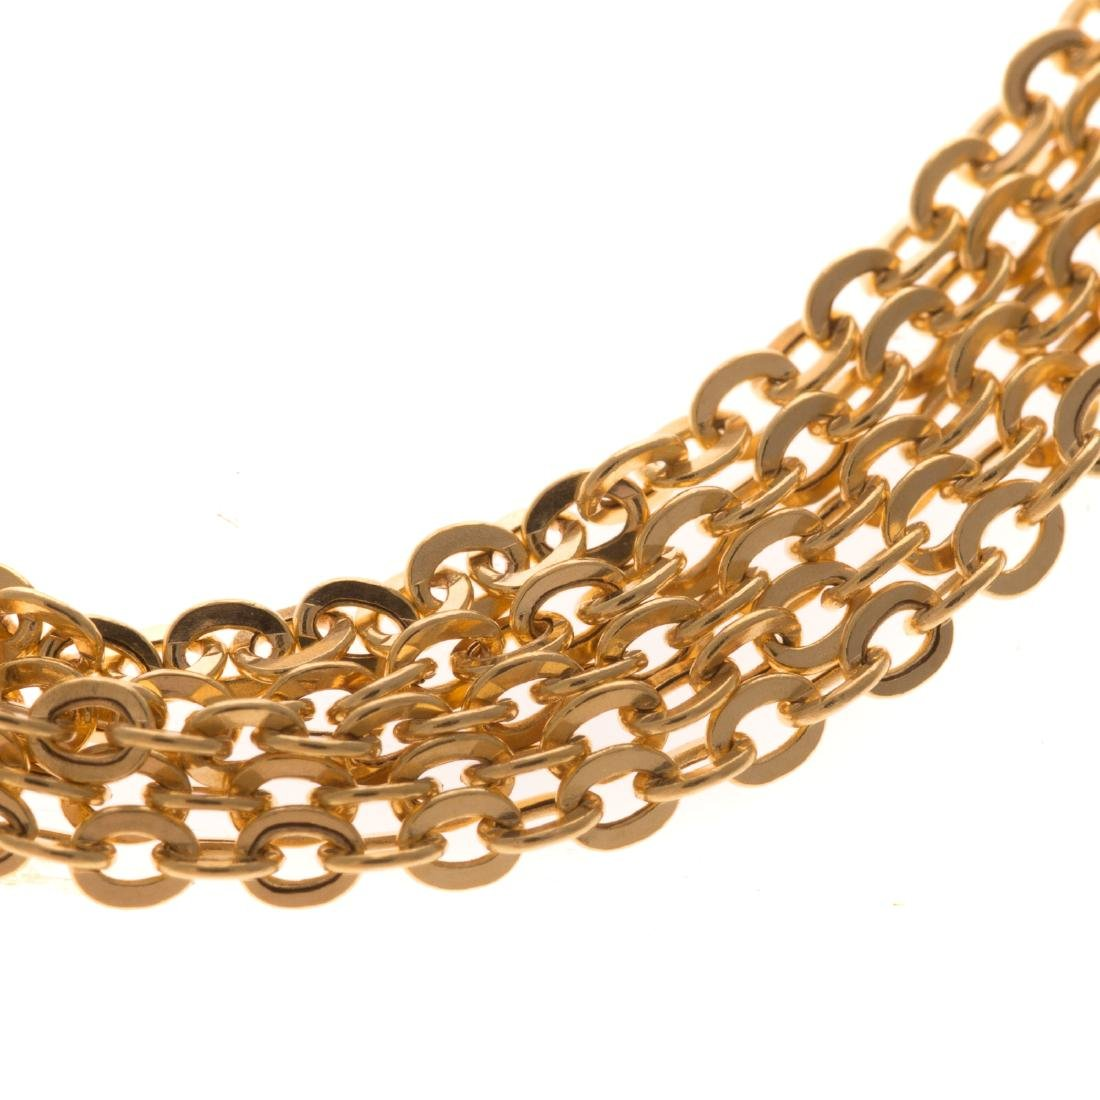 Two Lady's Necklaces in 14K Gold - 4